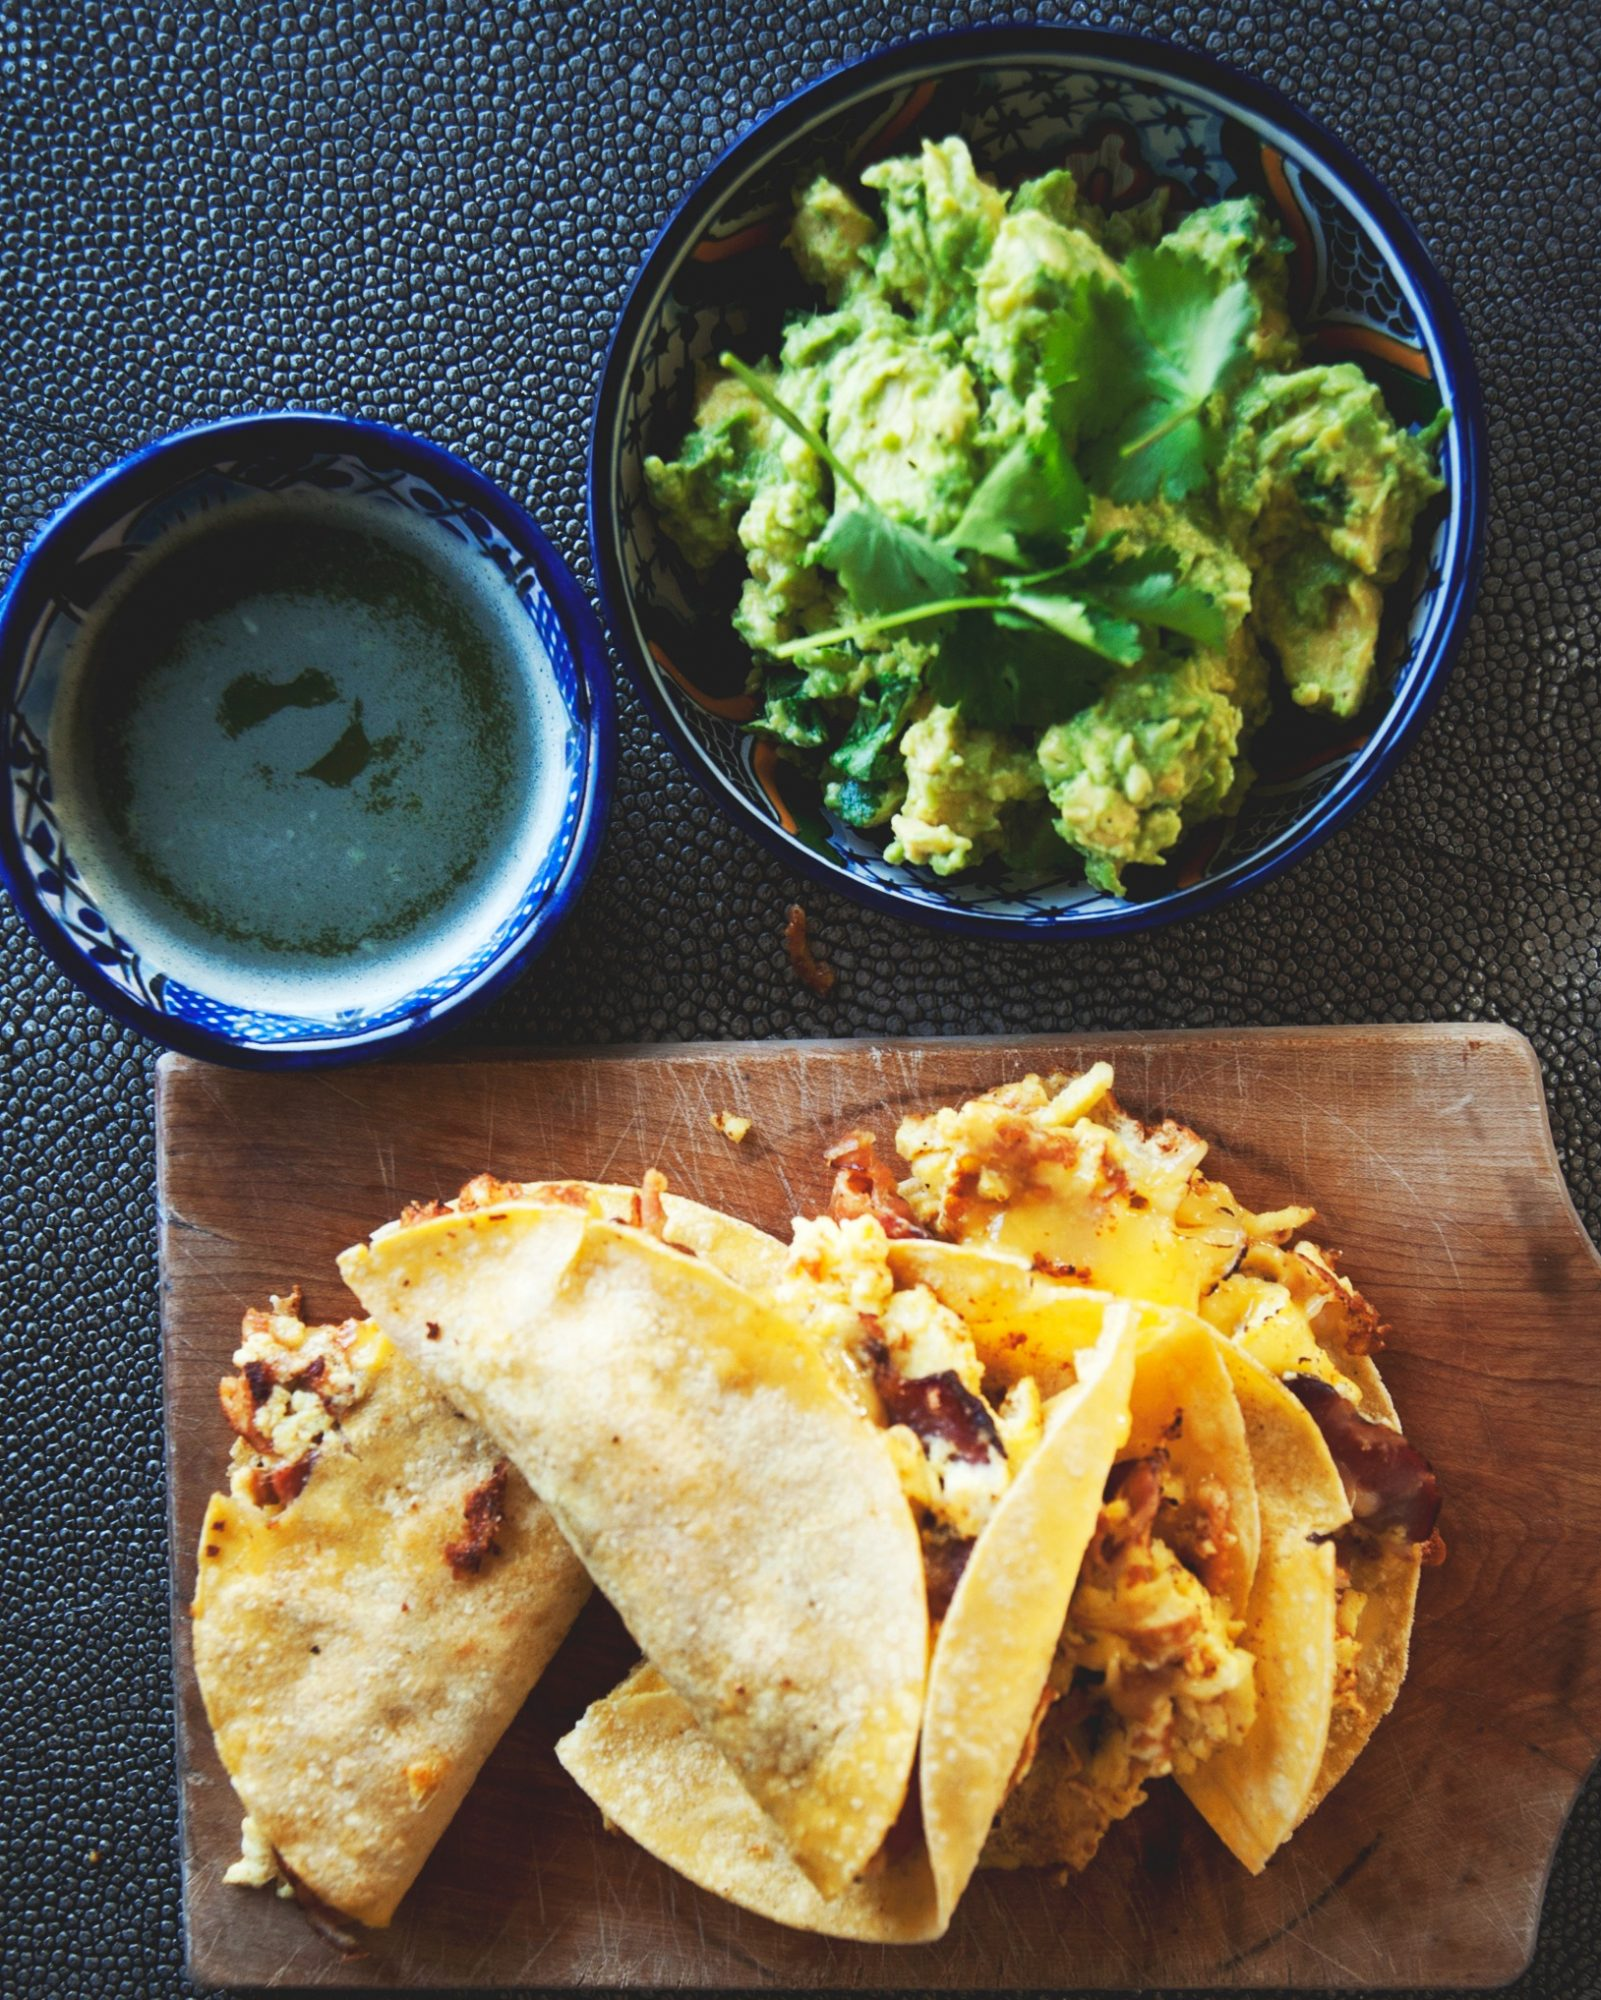 claire-thomas-valentines-day-breakfast-tacos-meal-0215.jpg